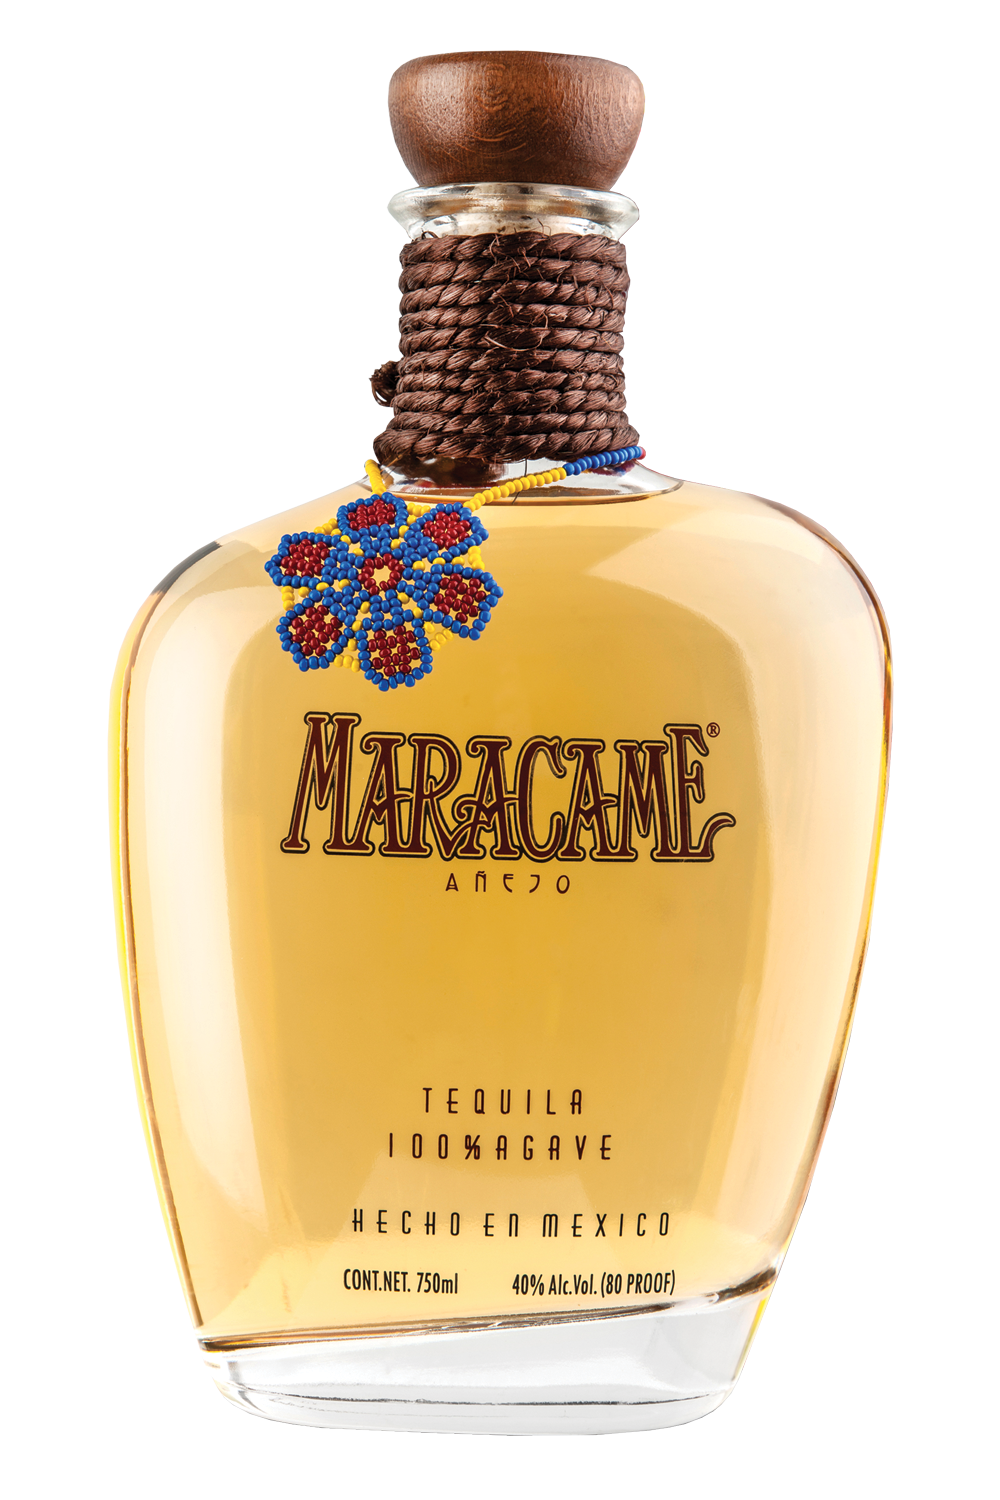 Maracame anejo tequila.png